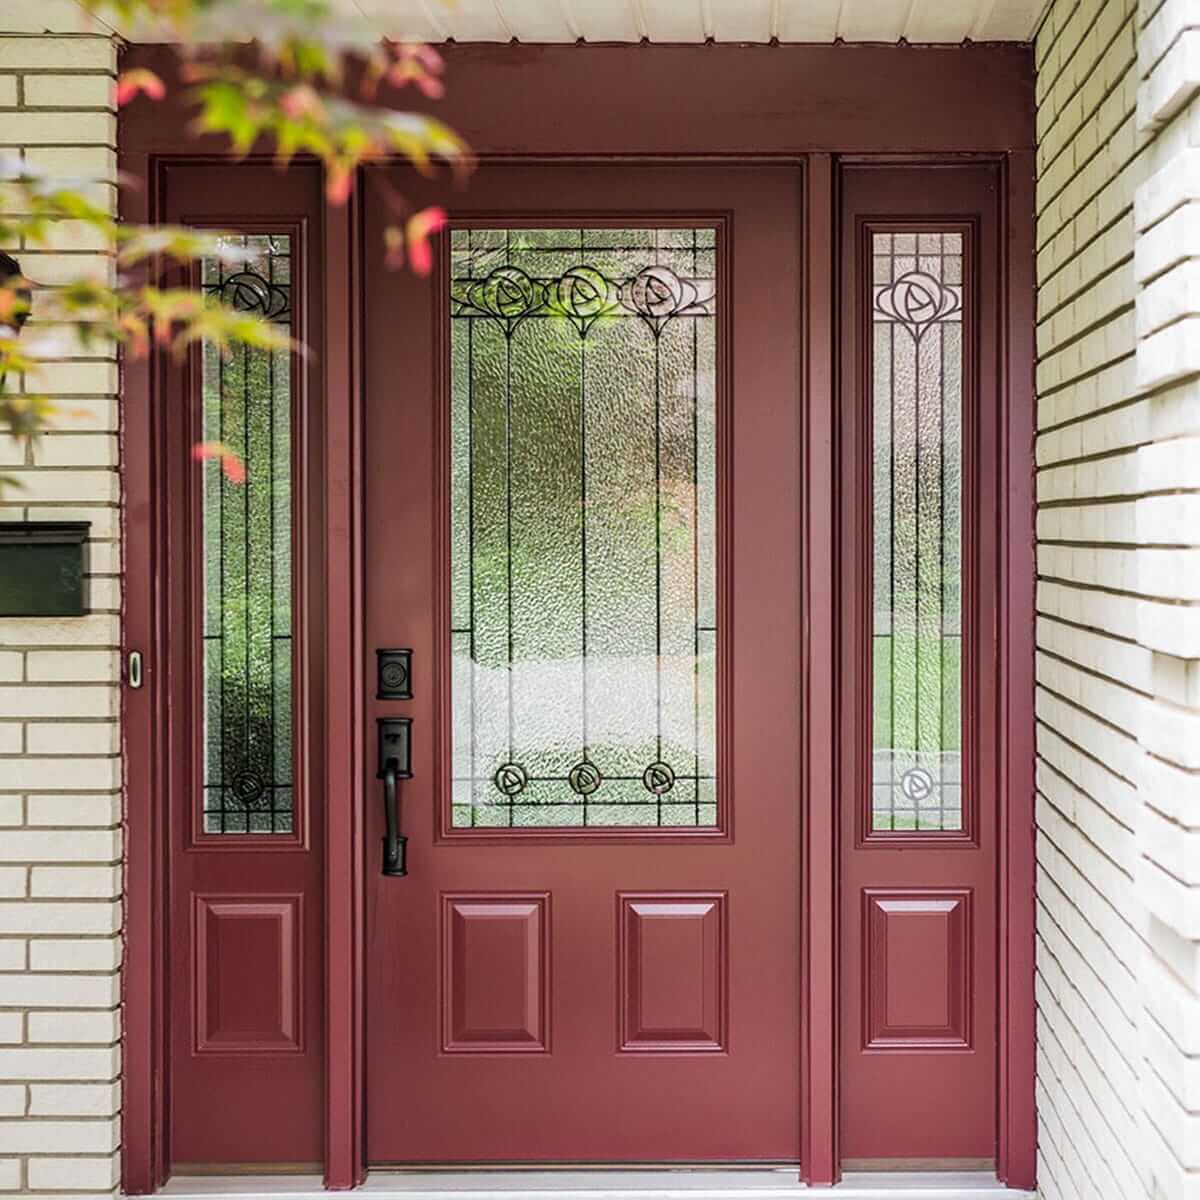 French Exterior Doors Steel: French Doors - Timeless, Custom-Made Double Doors